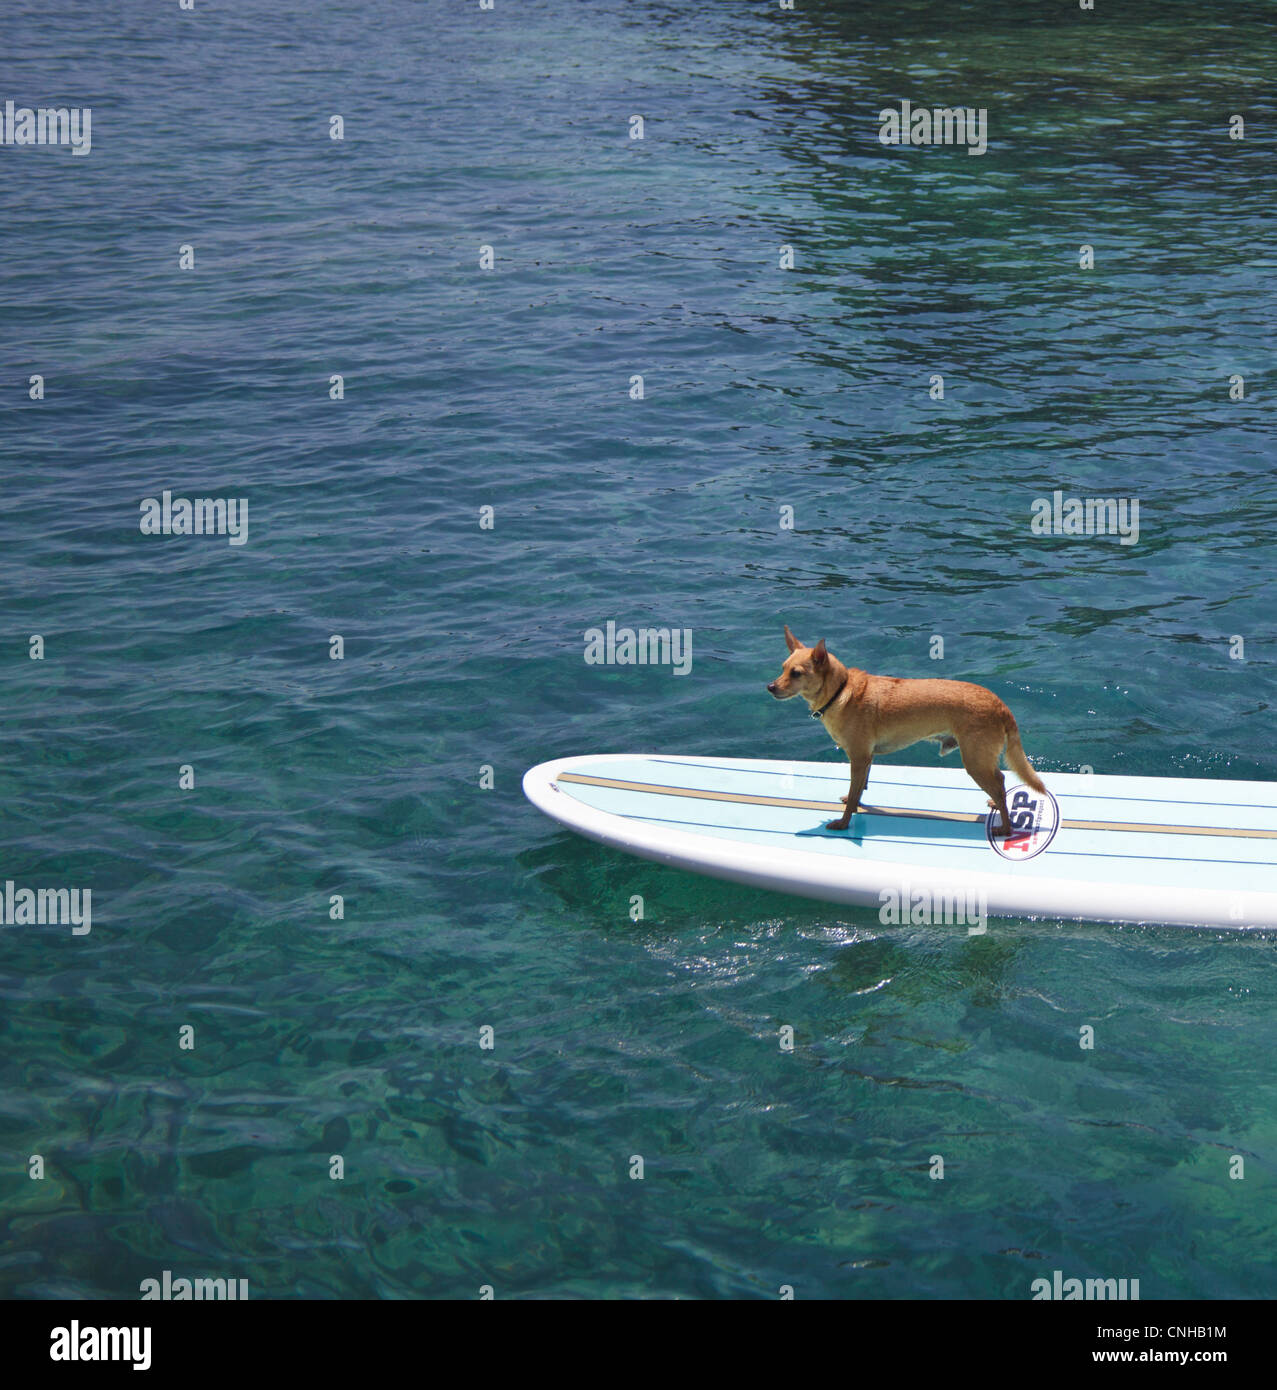 Dog named Menehune on stand up paddleboard on the Big Island of Hawaii - Stock Image